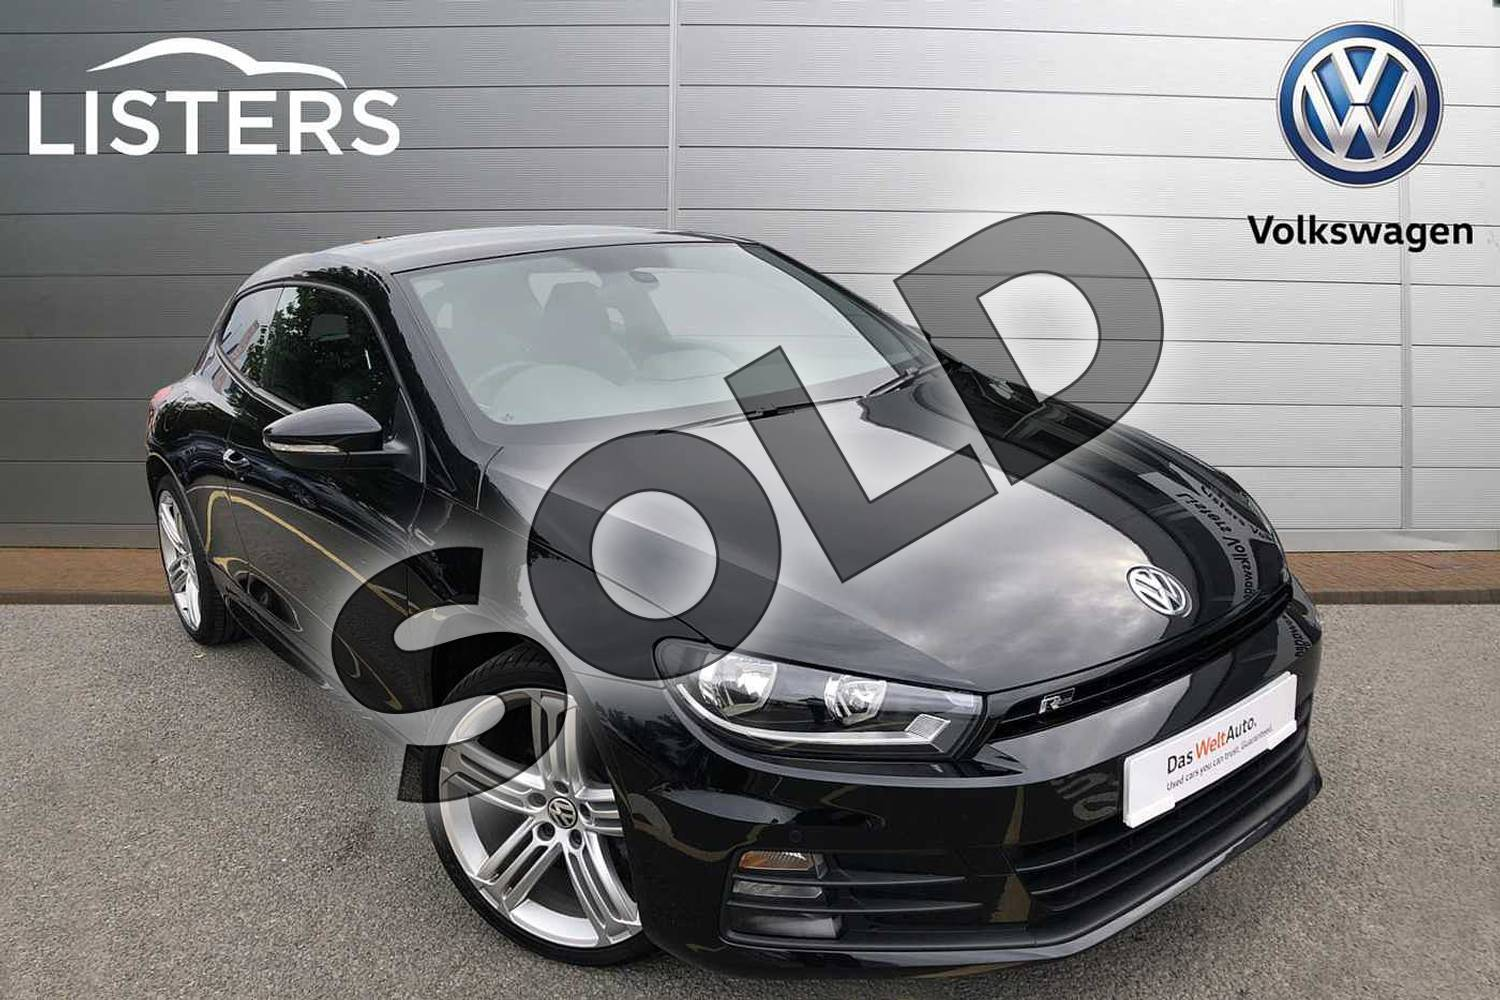 2017 Volkswagen Scirocco Diesel Coupe Diesel 2.0 TDI BlueMotion Tech R Line 3dr in Deep black at Listers Volkswagen Coventry